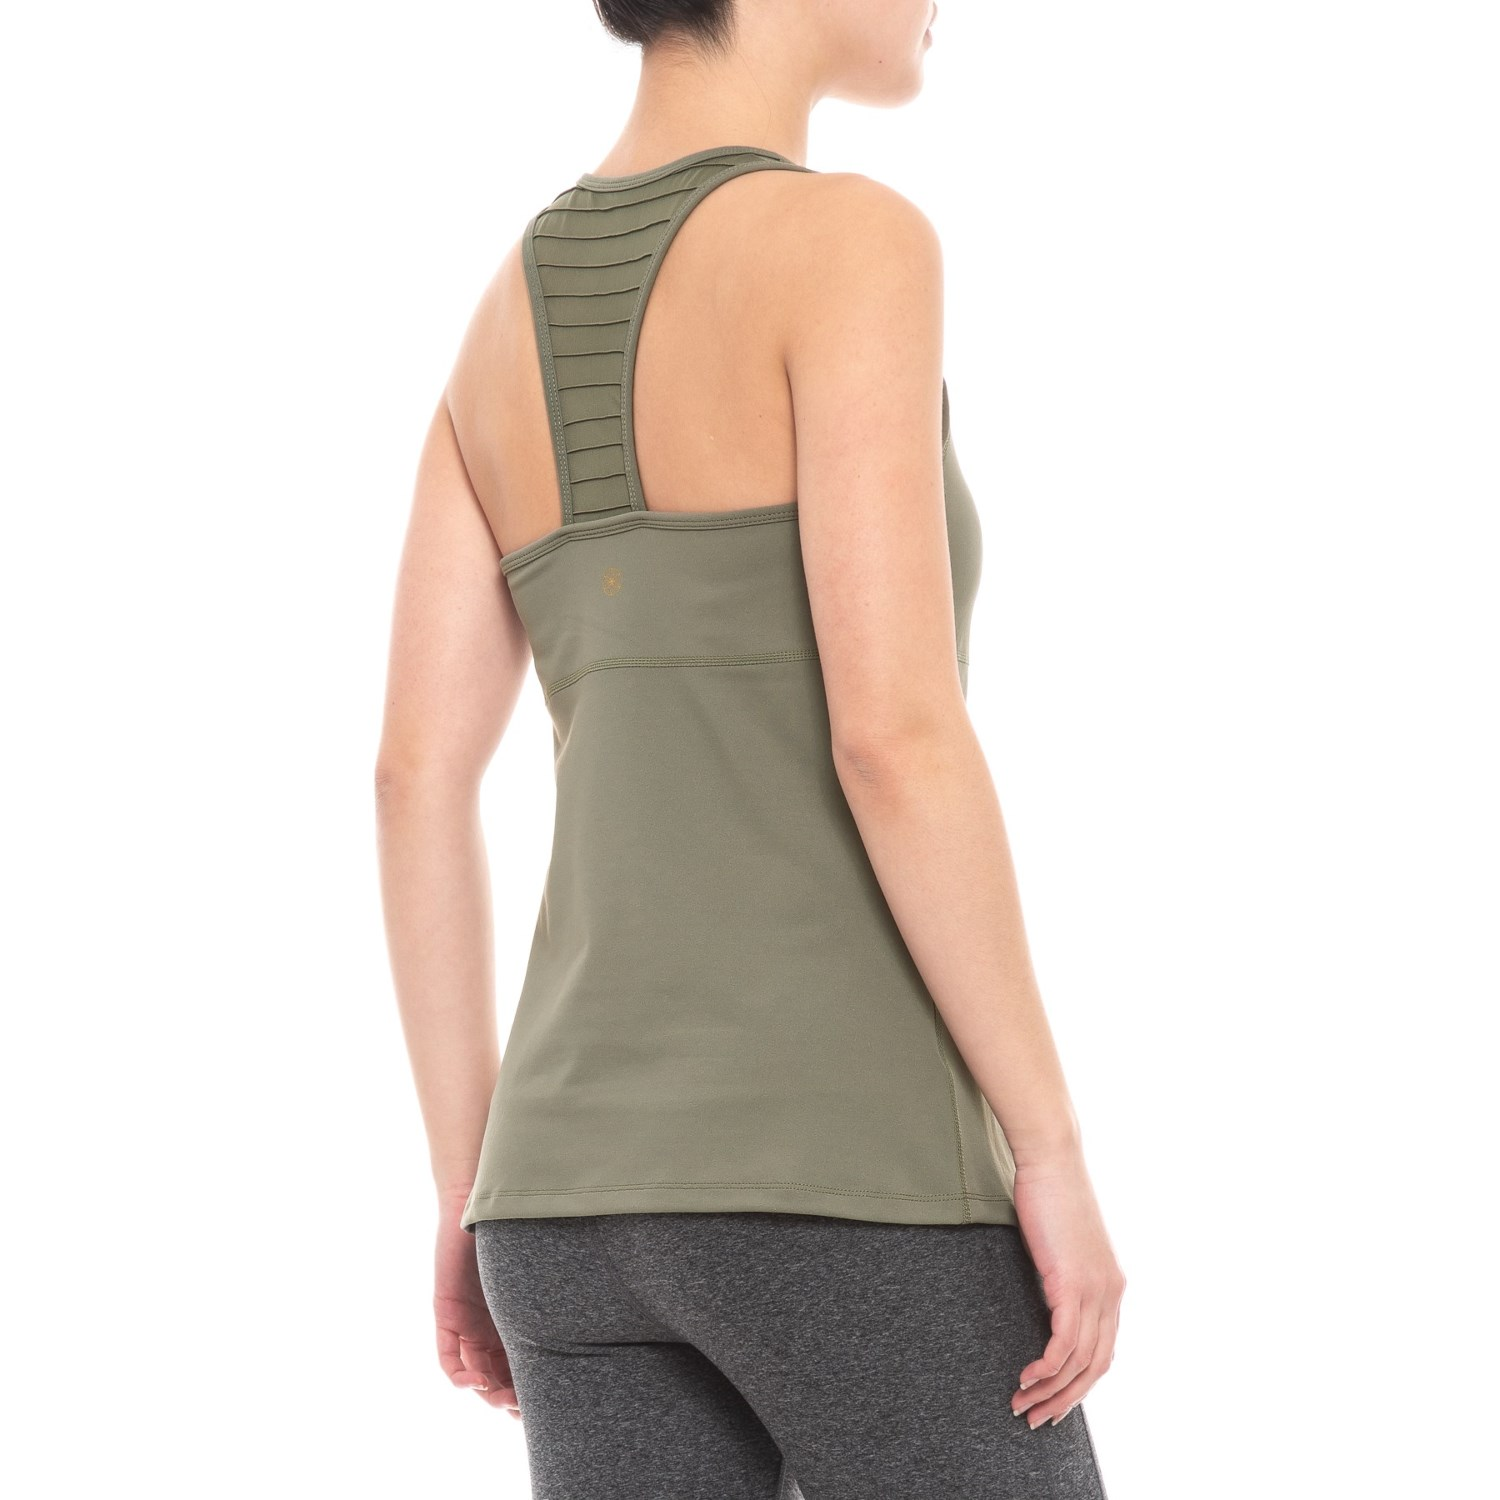 5e0b7f9db0091 Gaiam Emila Pintuck Mesh Tank Top - Shelf Bra (For Women)